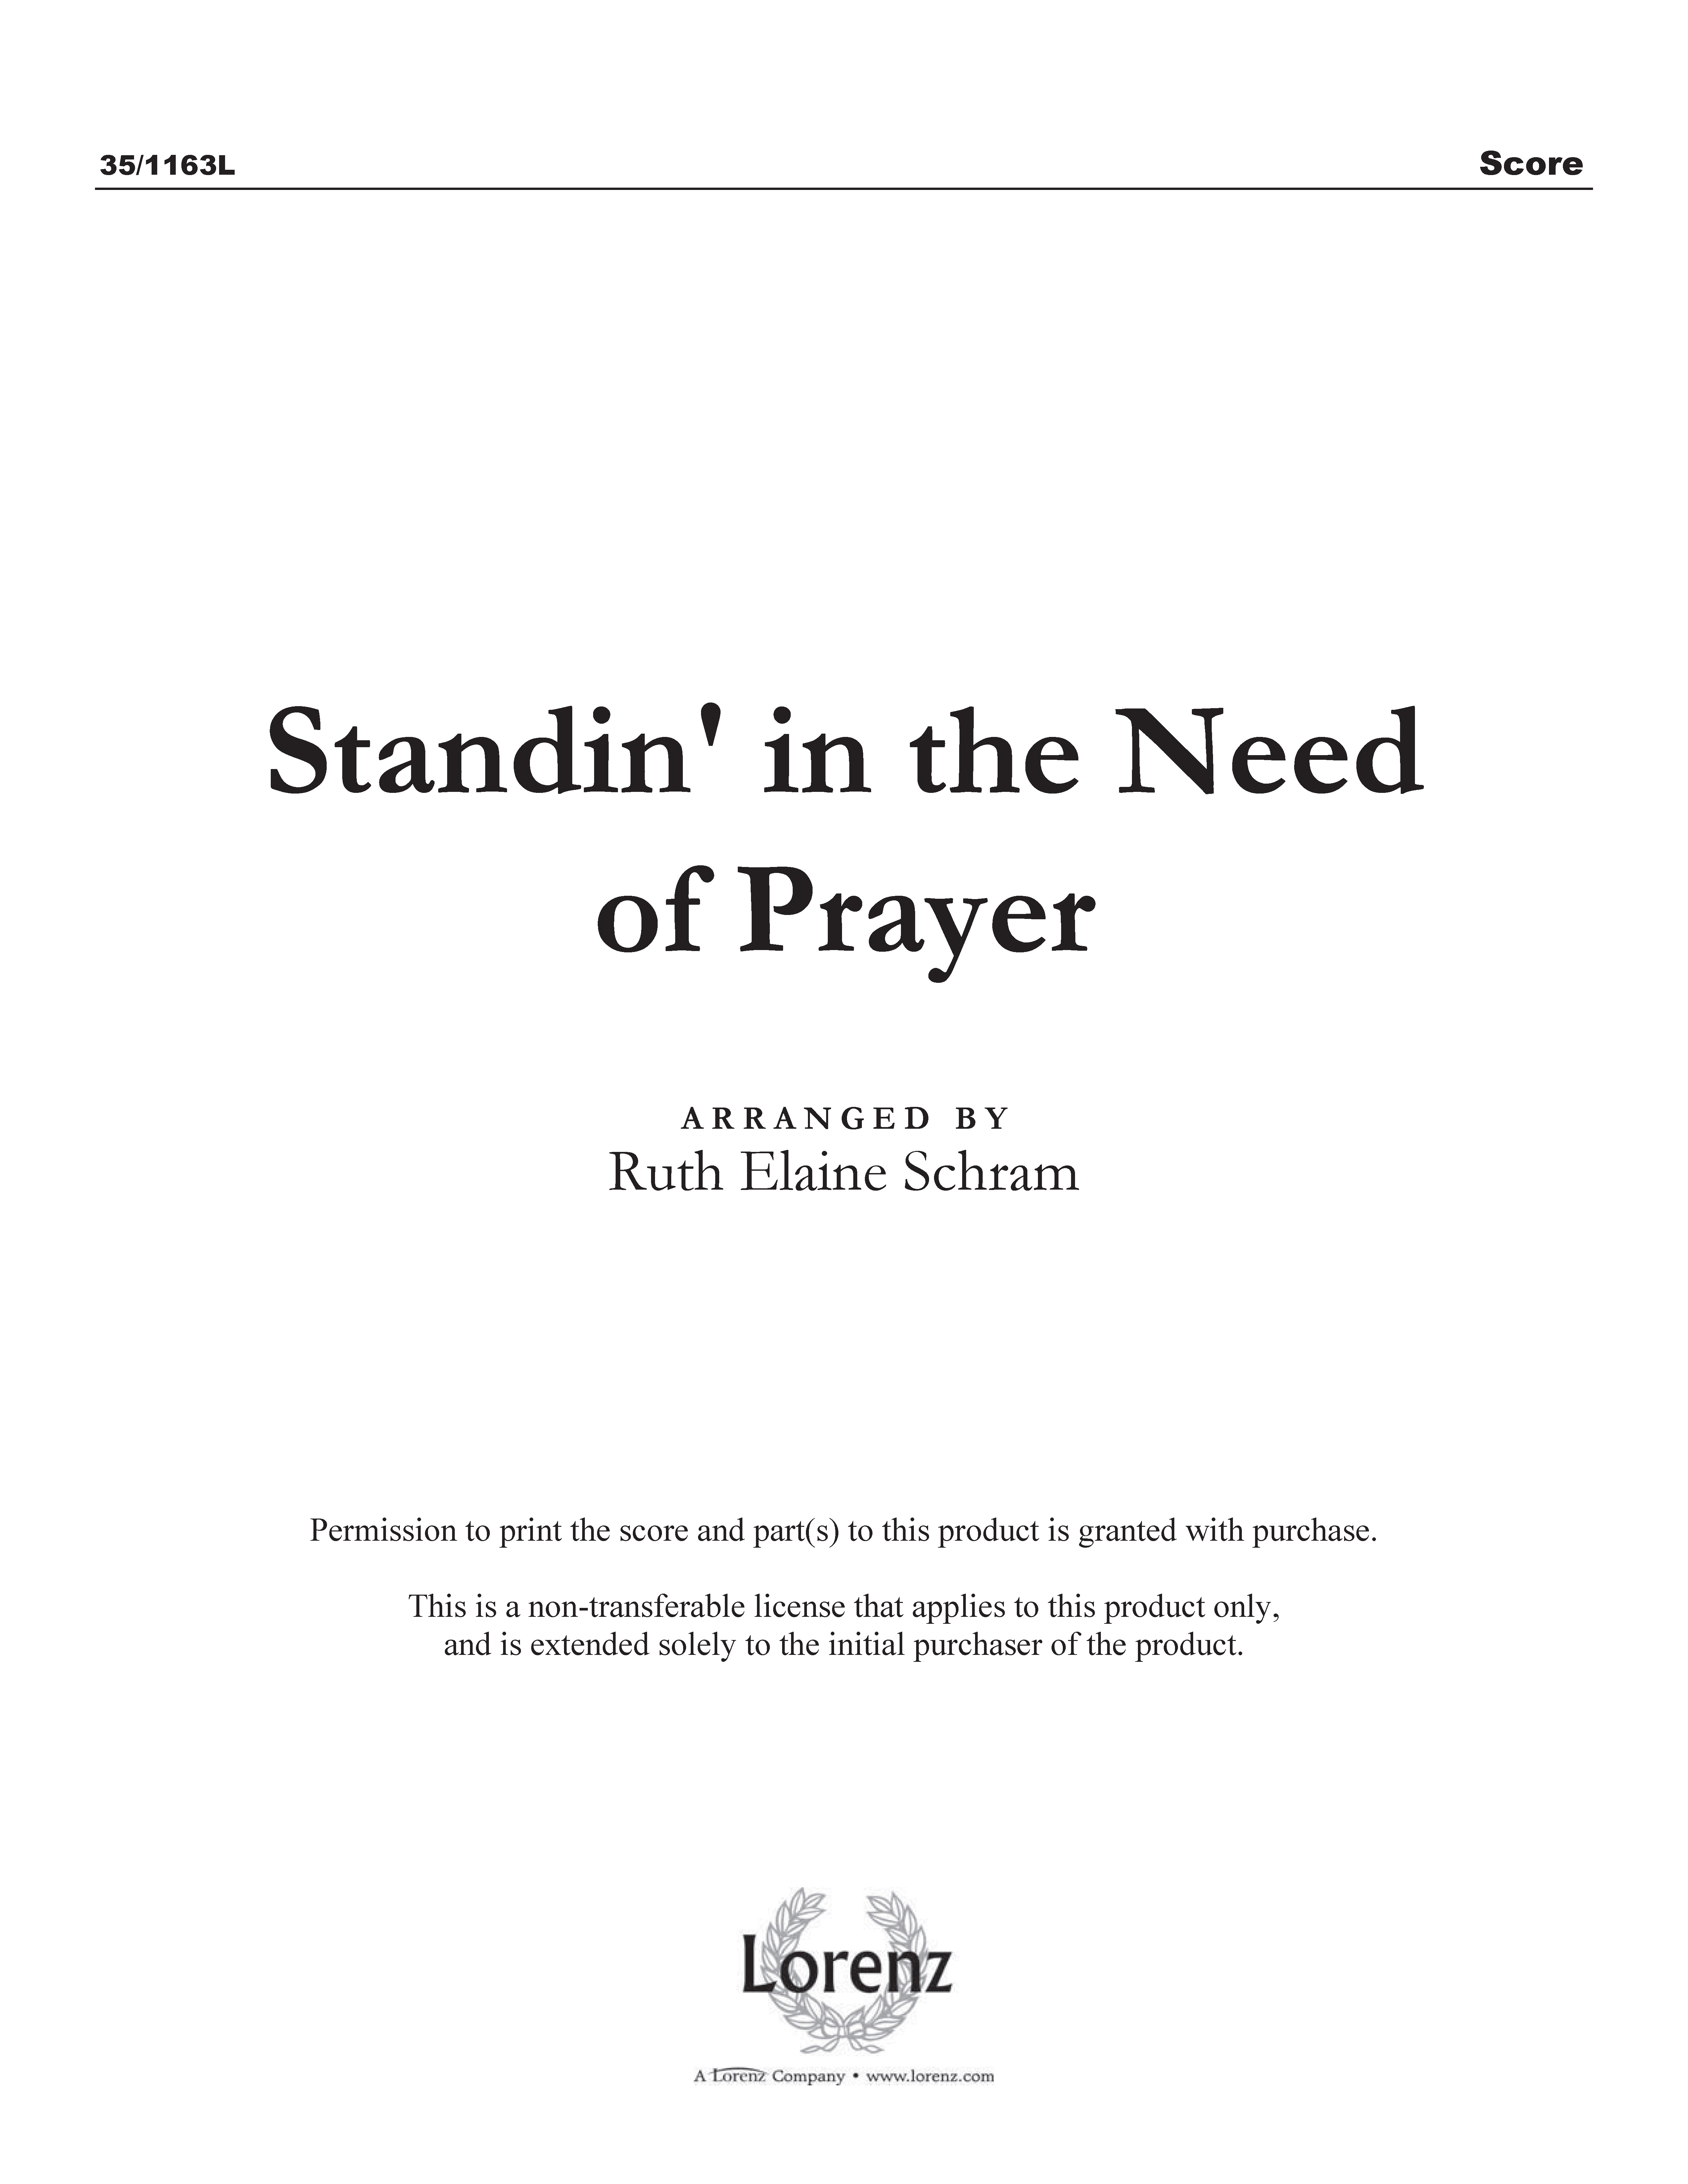 Standin' in the Need of Prayer (Digital Delivery)